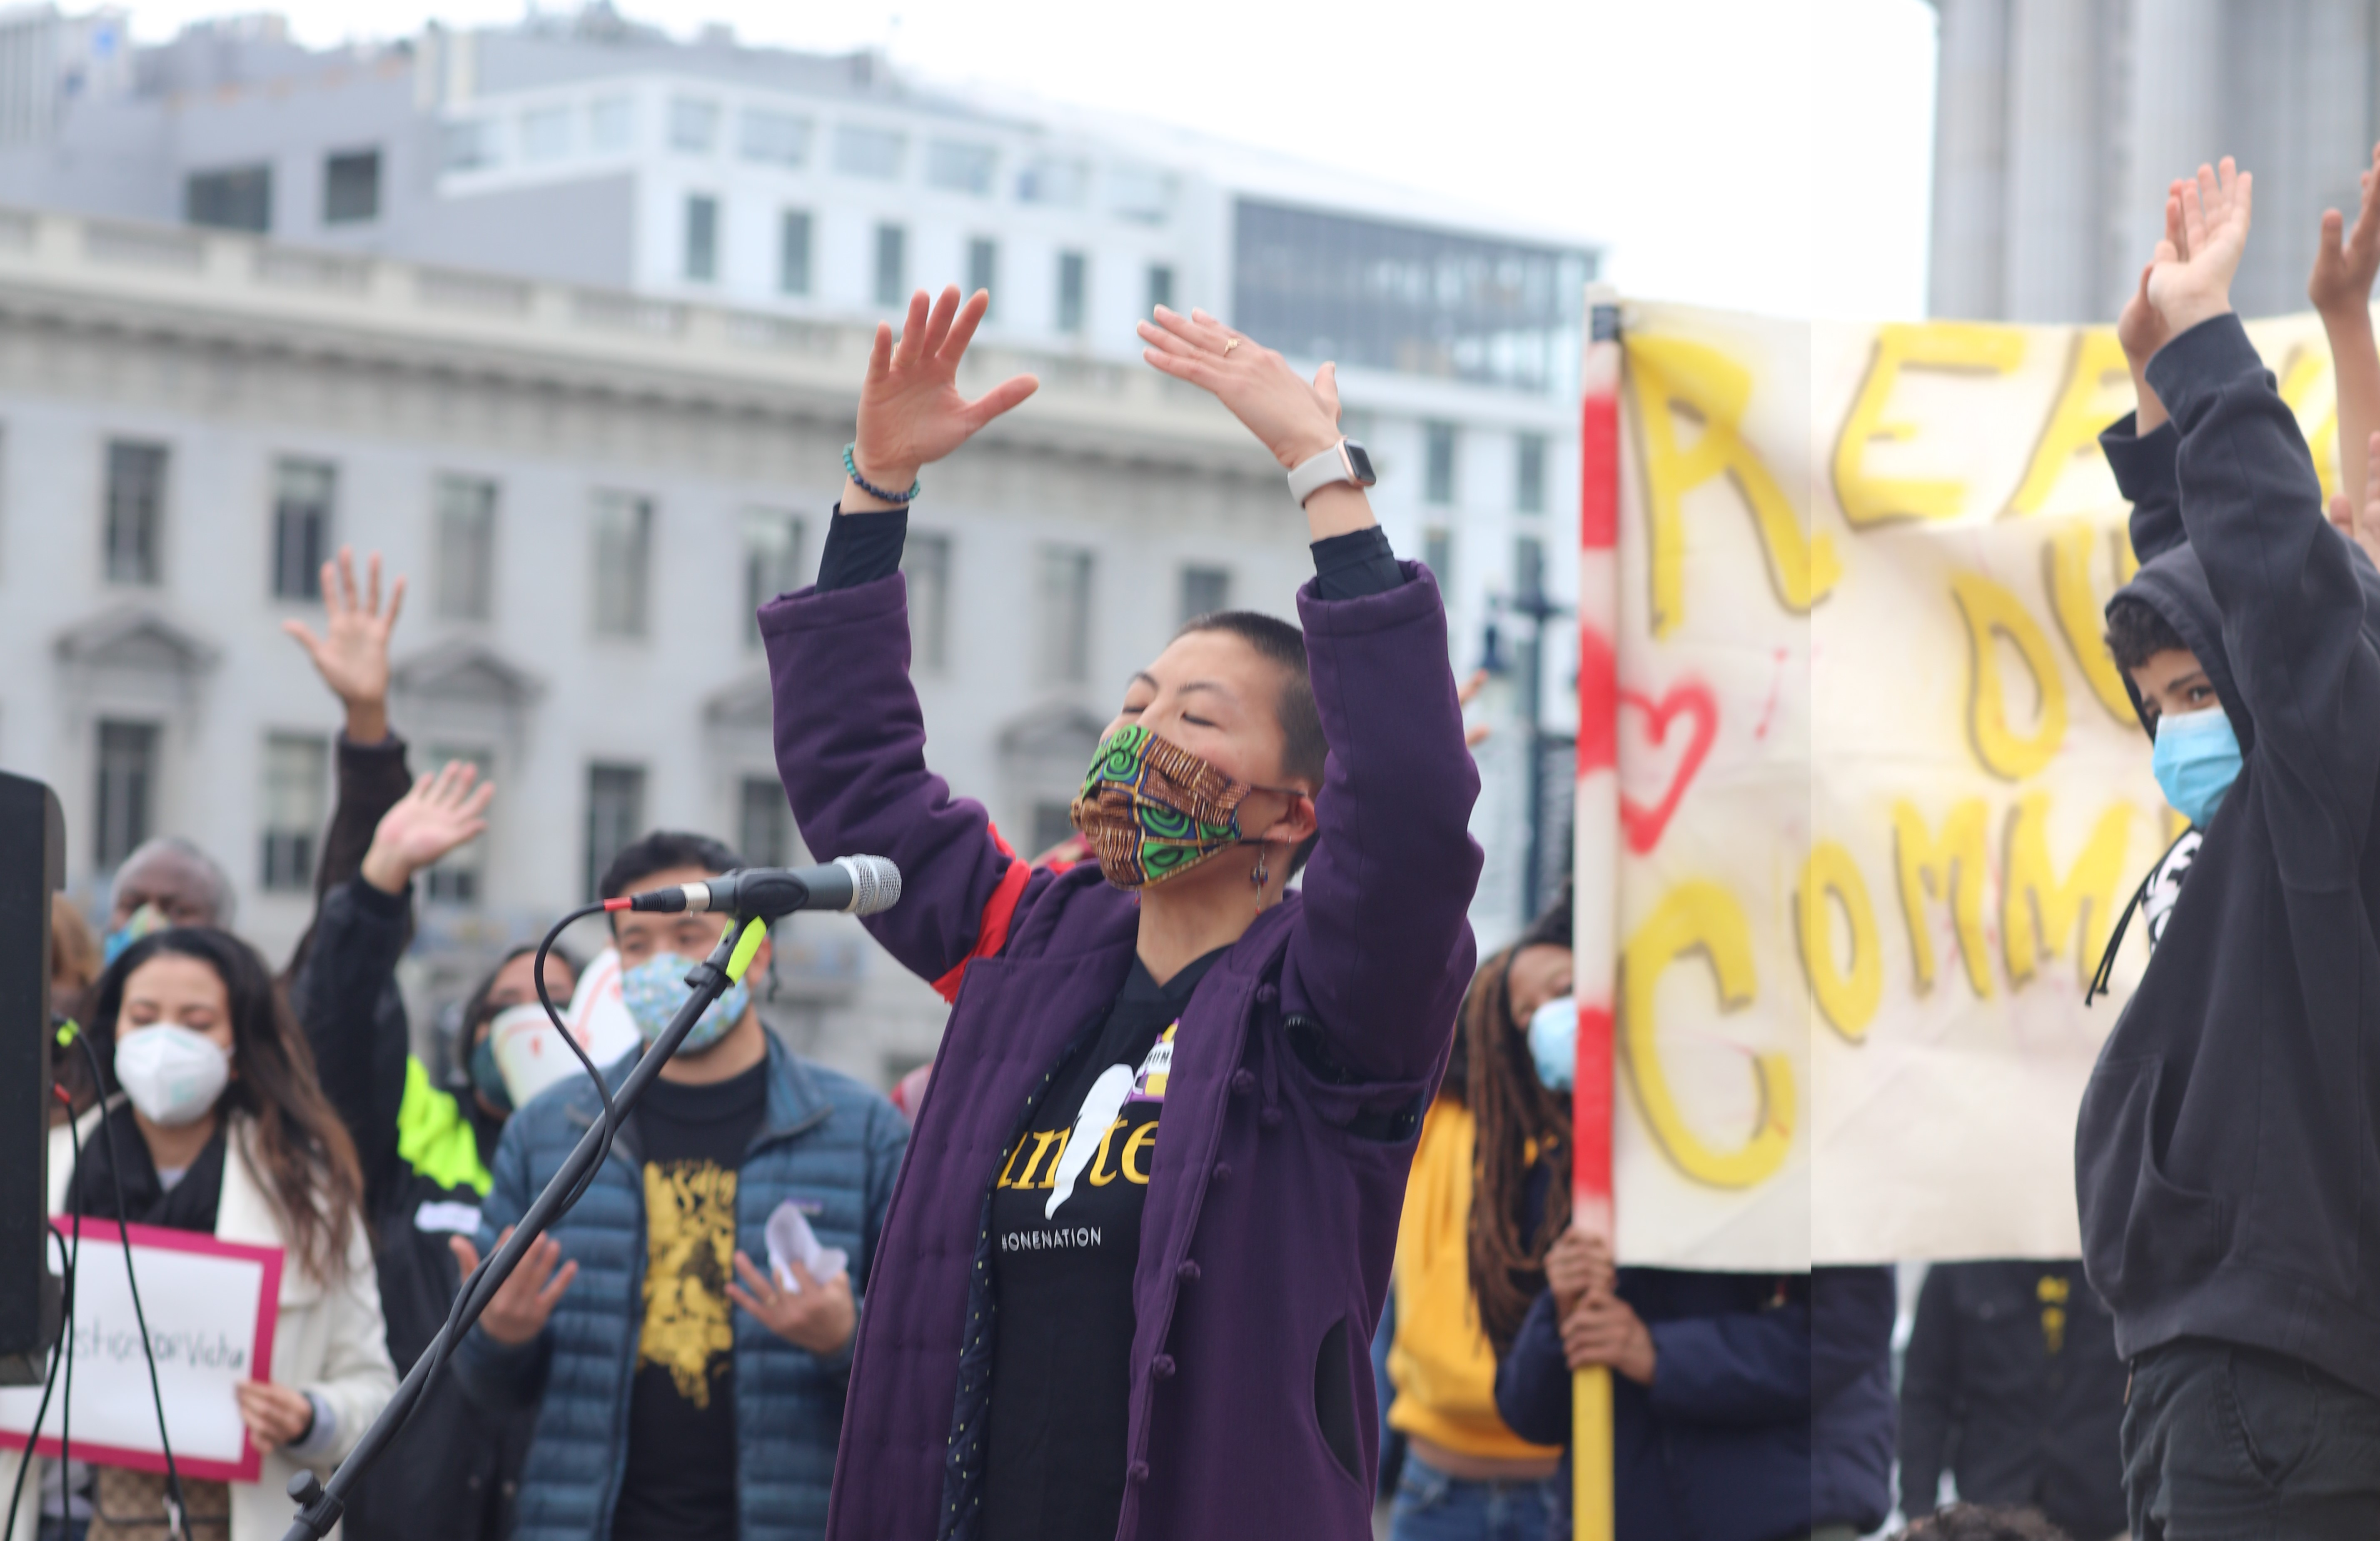 Sassana Yee of Communities of One leads rally participants in prayer at the San Francisco Day of Action in Civic Center Plaza. (Image Credit: TC Chang for CAA)